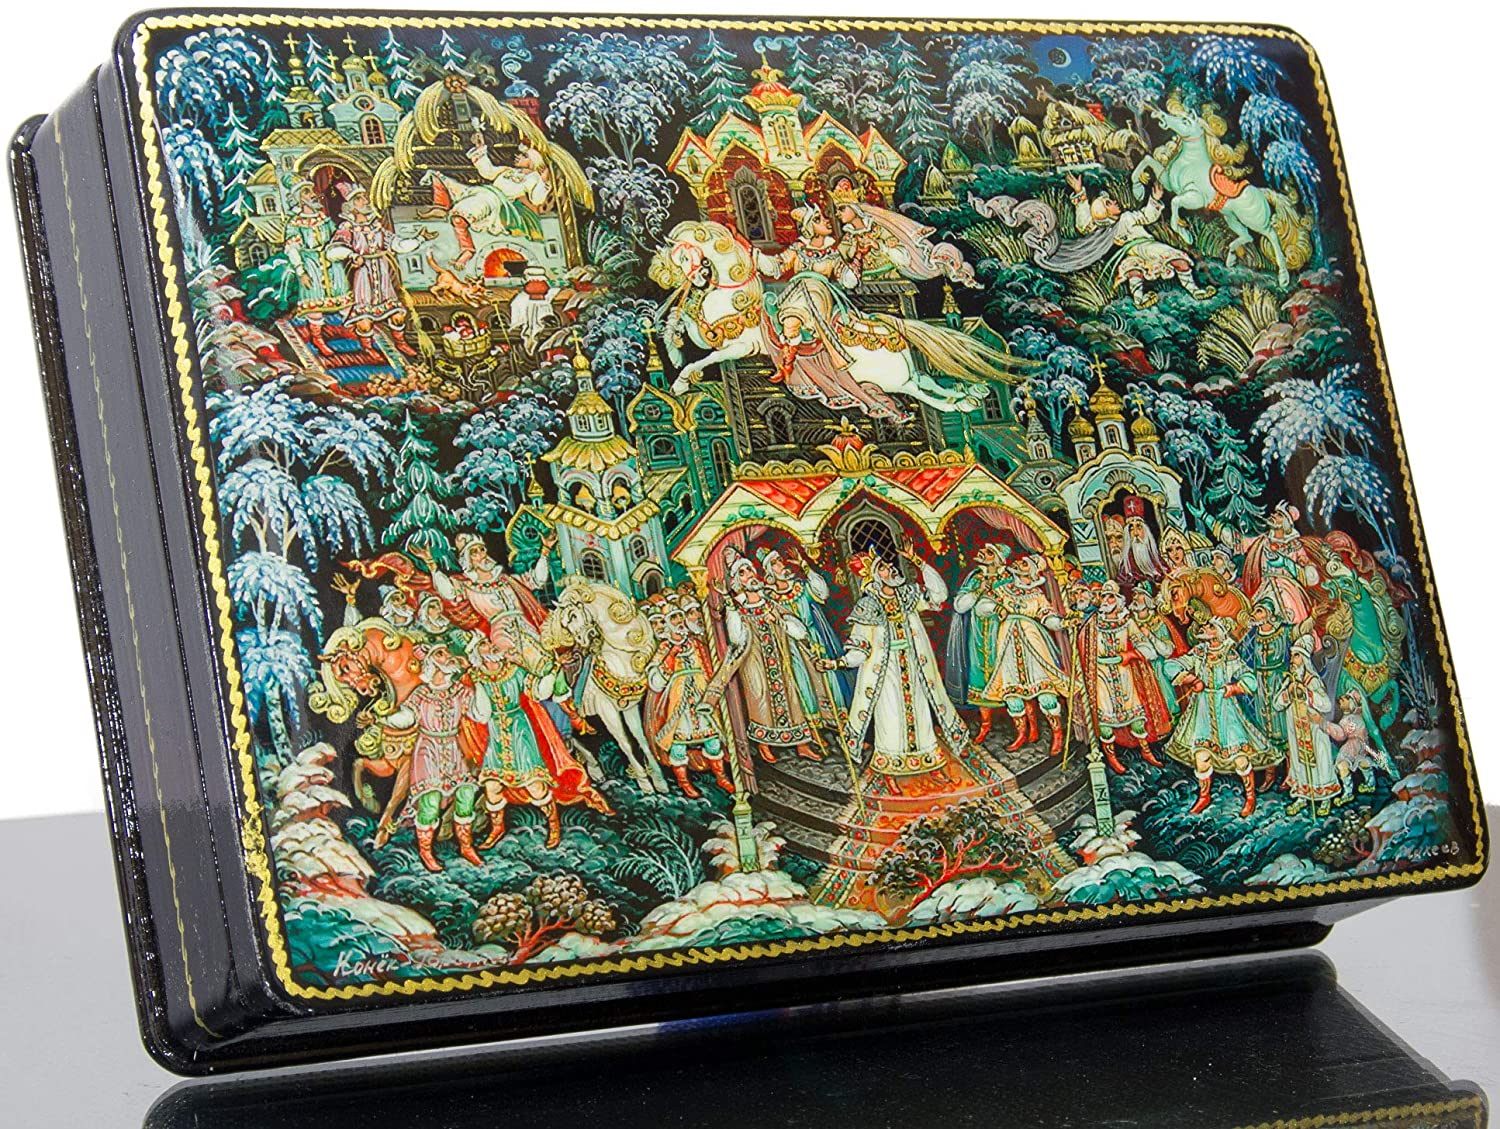 craftsfromrussia Russian Lacquer Miniature - Jewelry Trinket Box - Series #2 The Sory of Wise Magic Horse(Russian Fairy Tale) - Big Size - Hand Painted in Russia (Series B - 11)